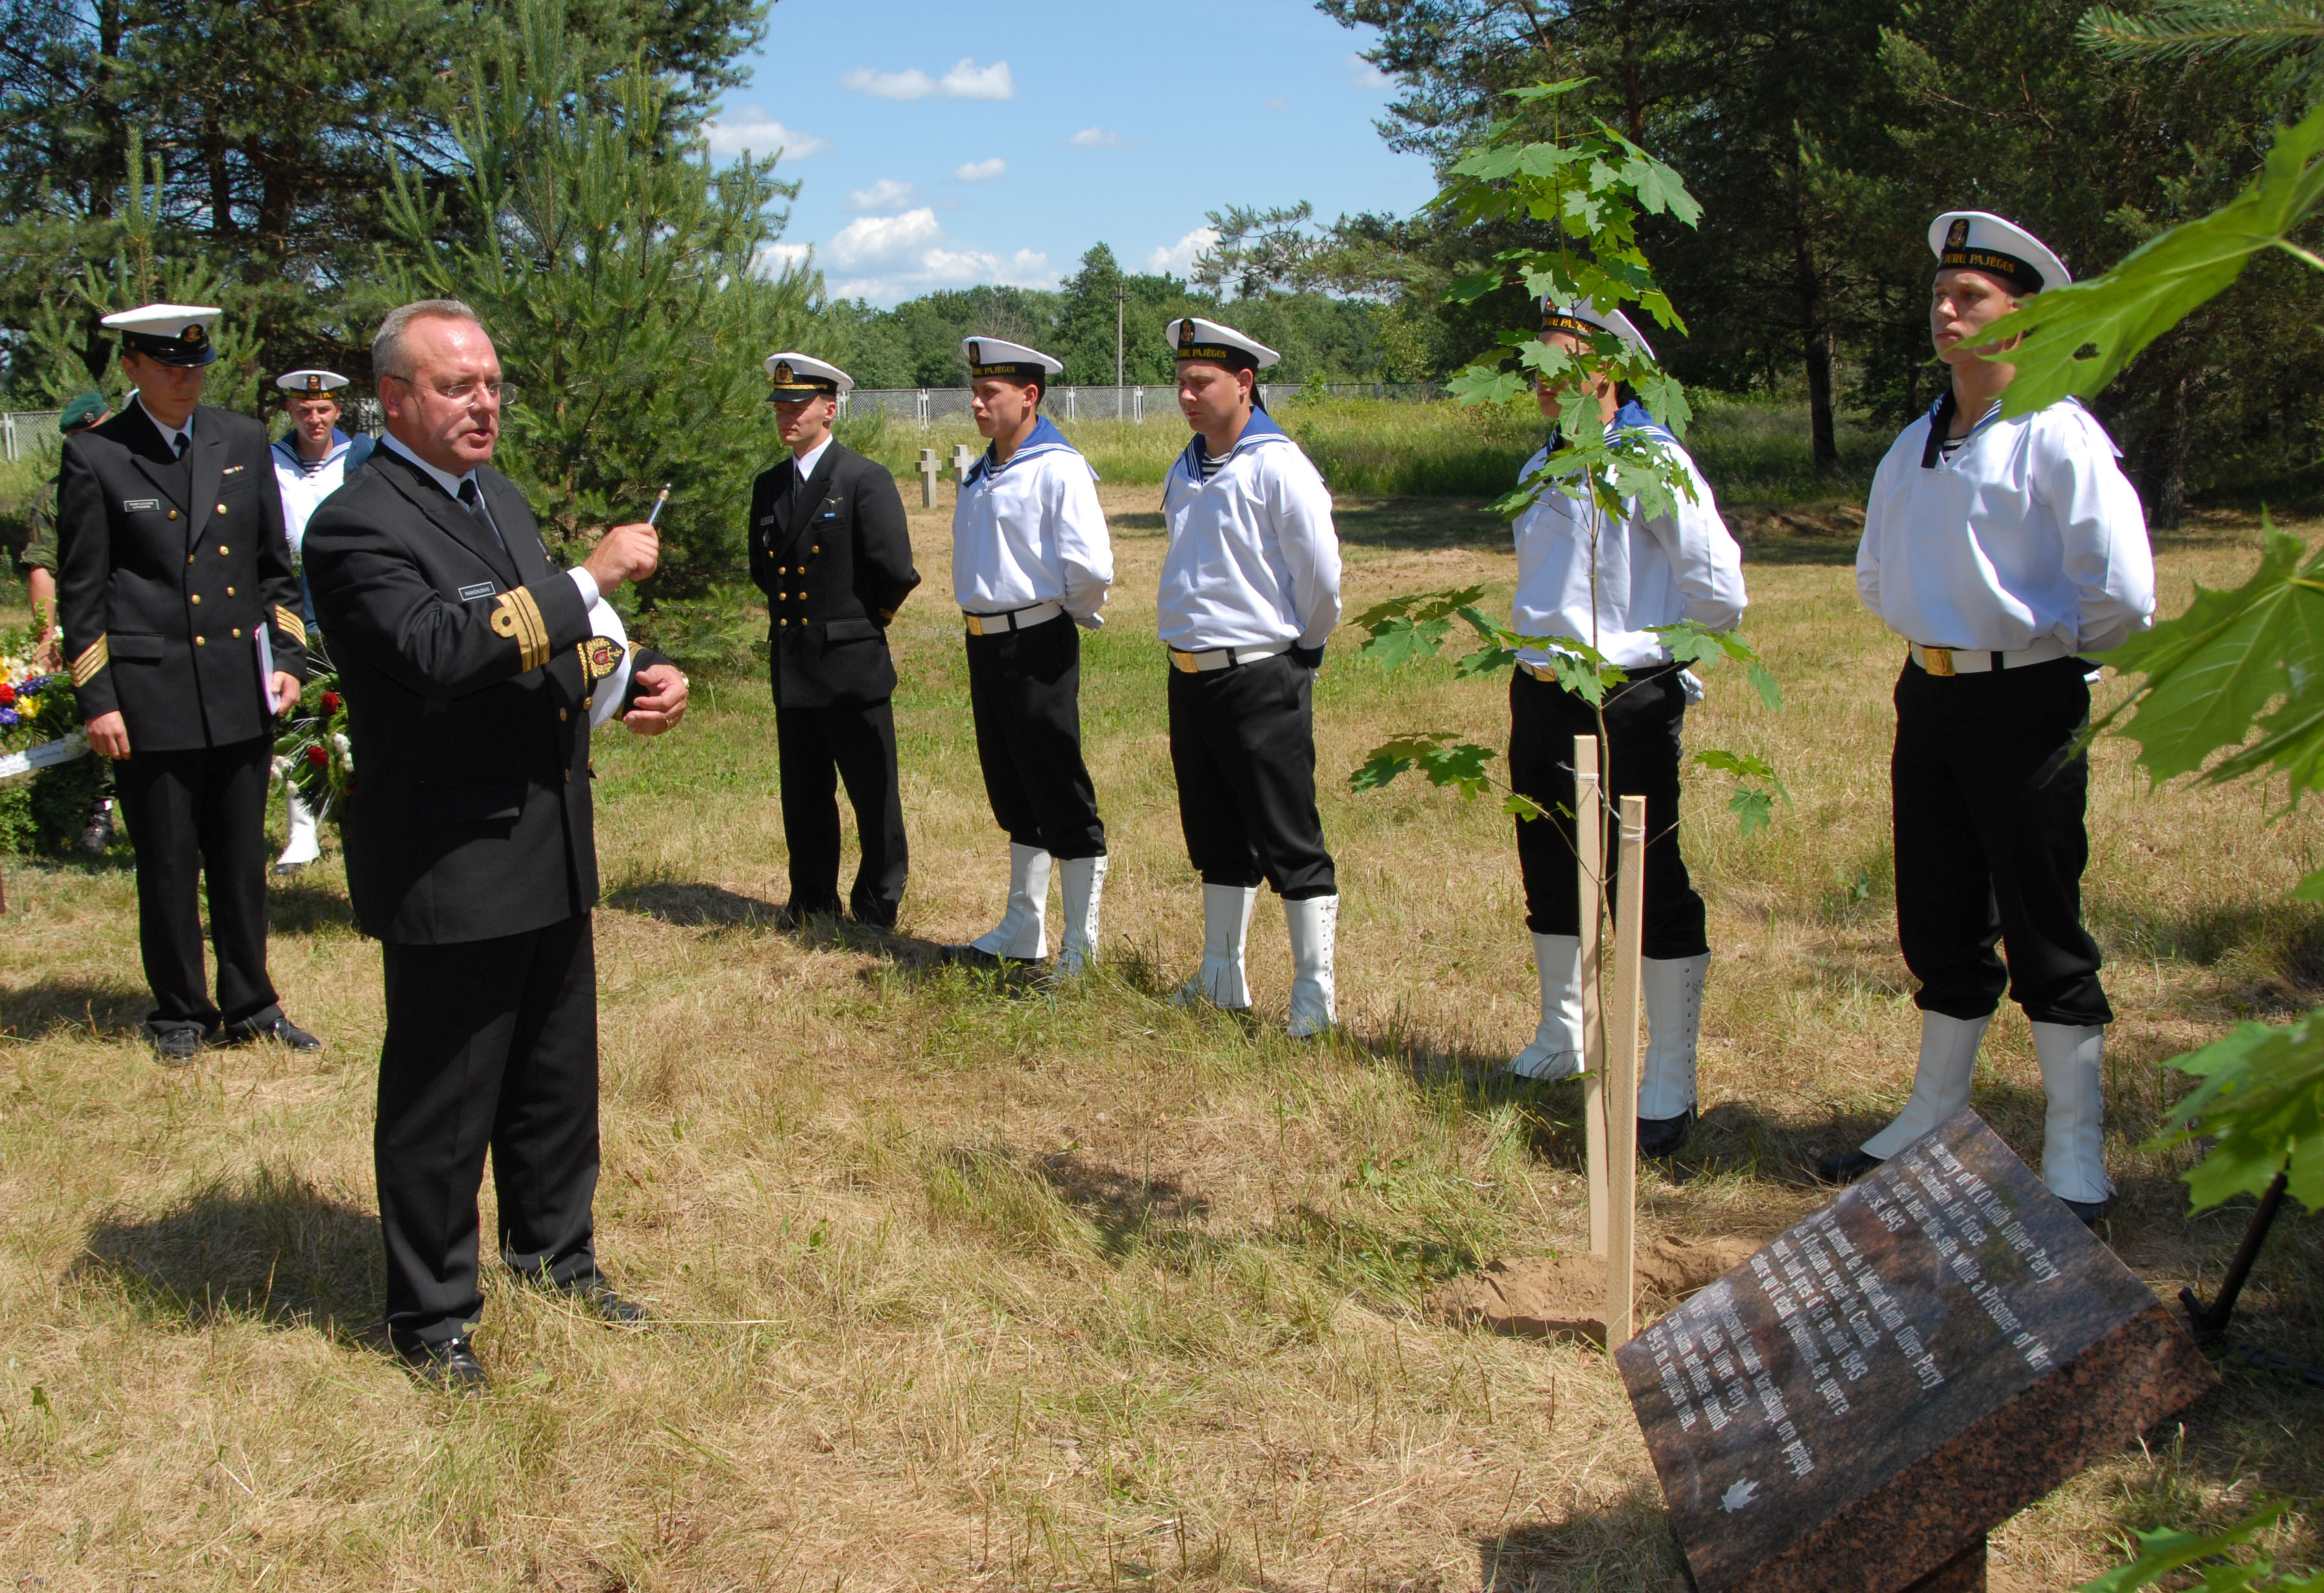 A Lithuanian naval chaplain blesses the memorial commemorating Warrant Officer Class 1 Perry in Macikai, Lithuania, during its unveiling in June 2007. PHOTO: DND